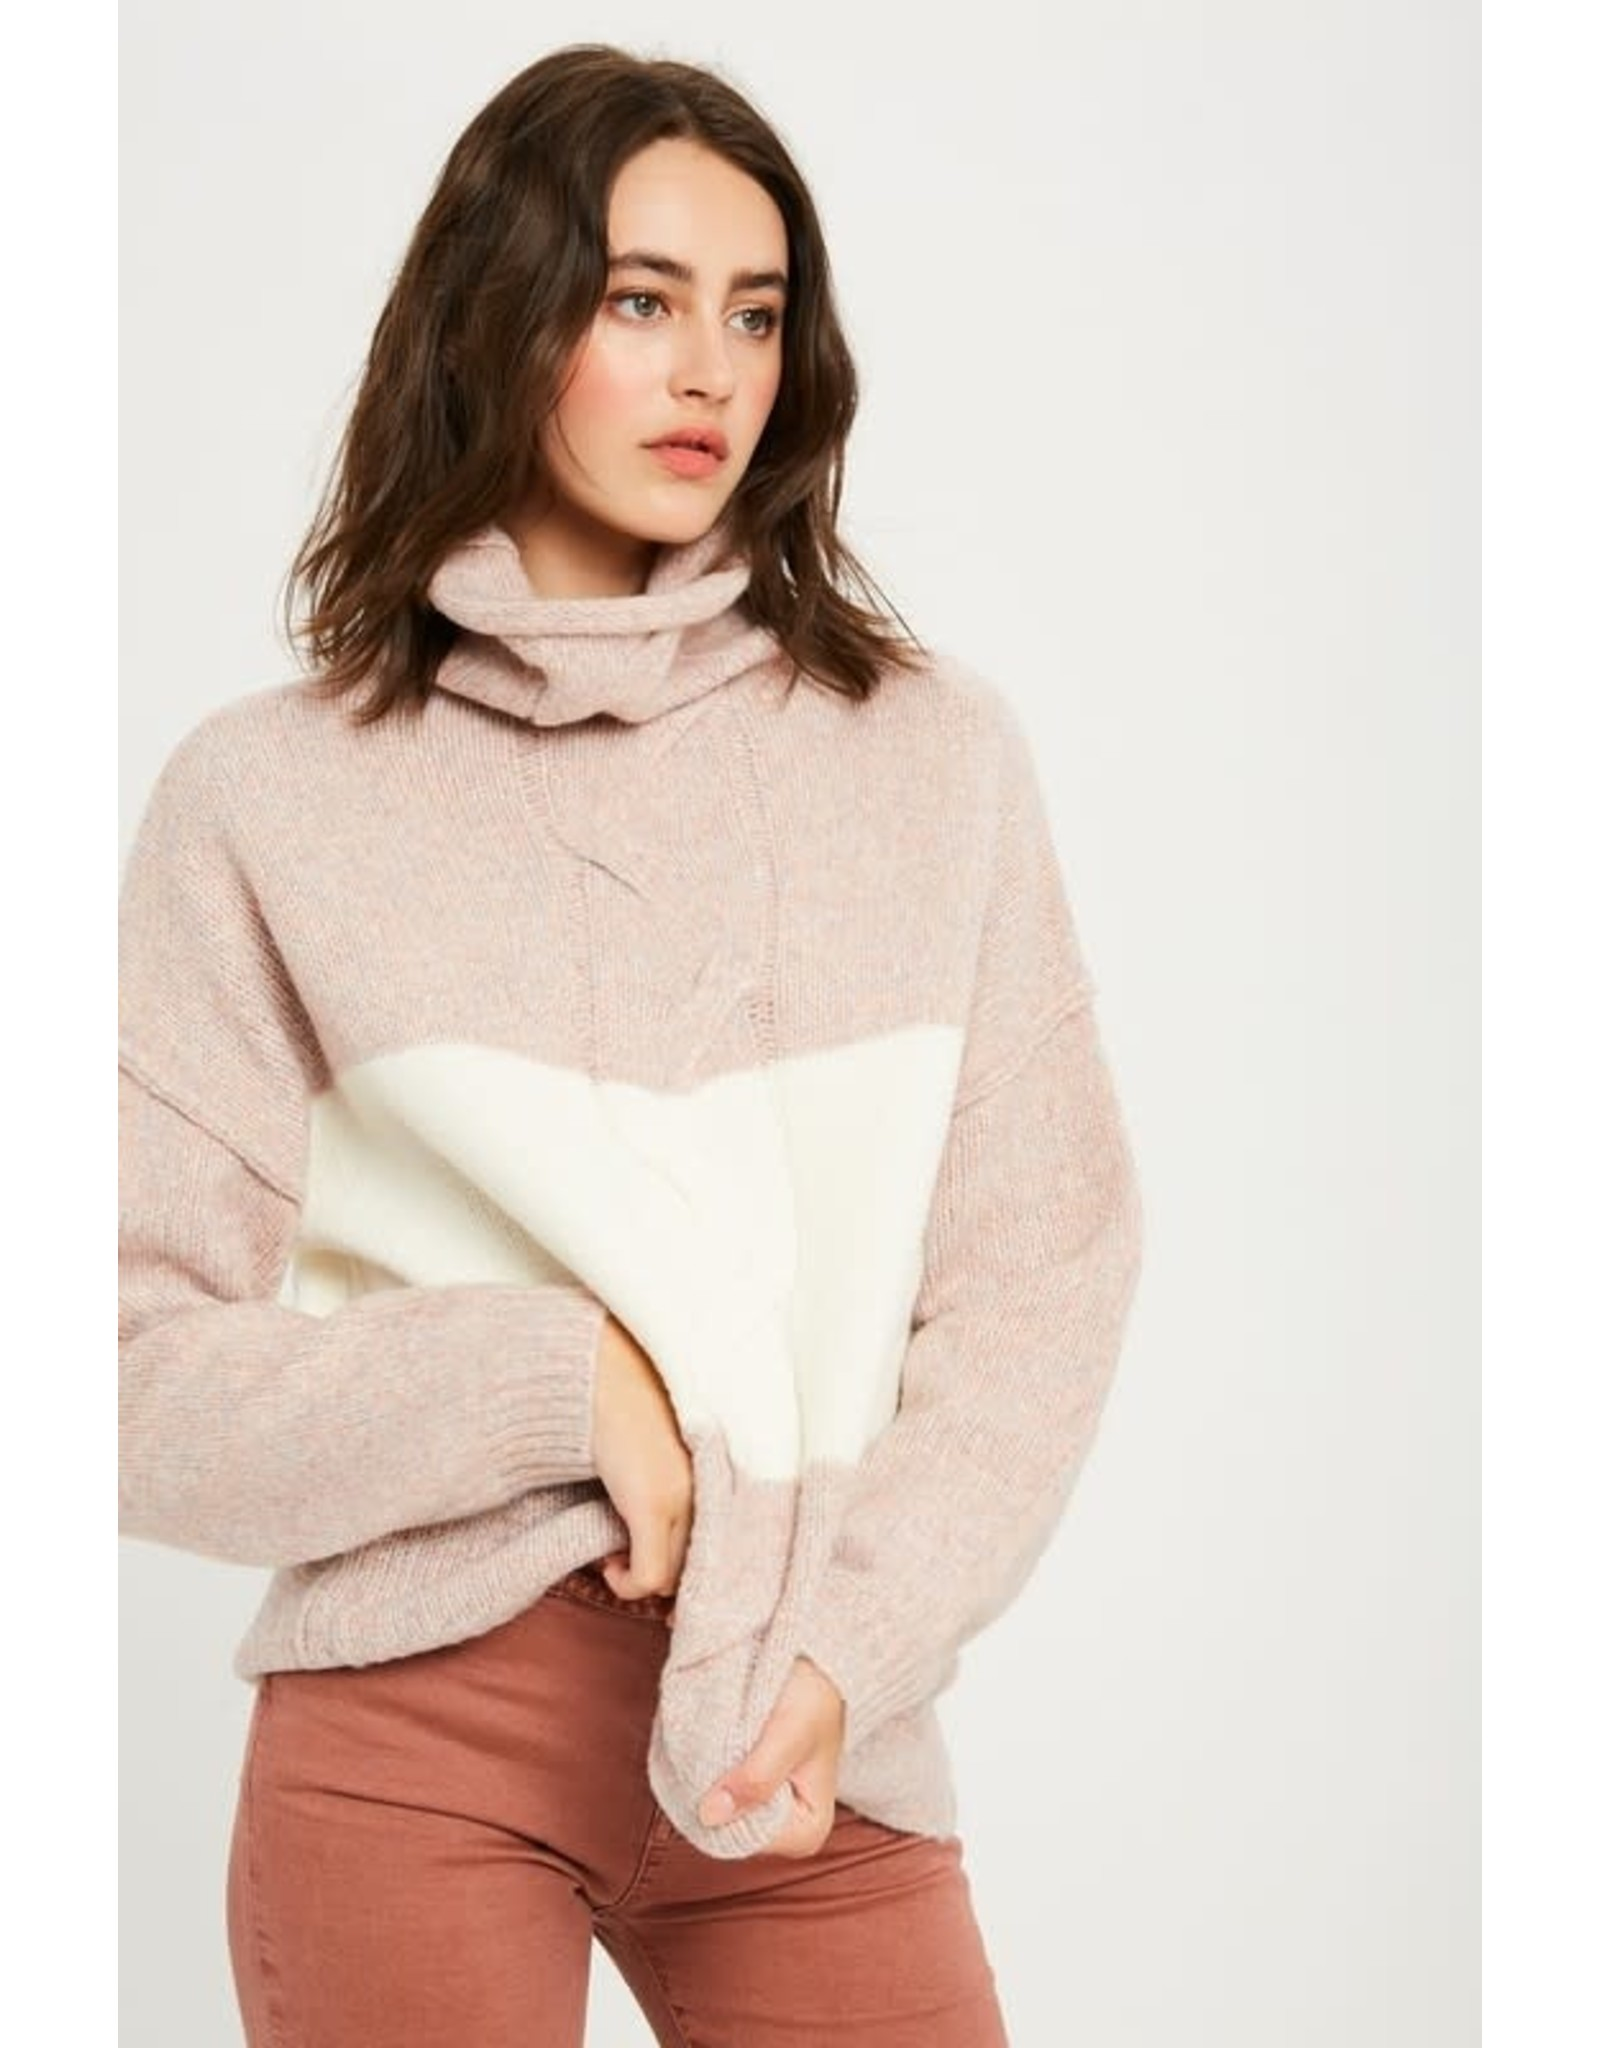 Look Between The Lines Sweater